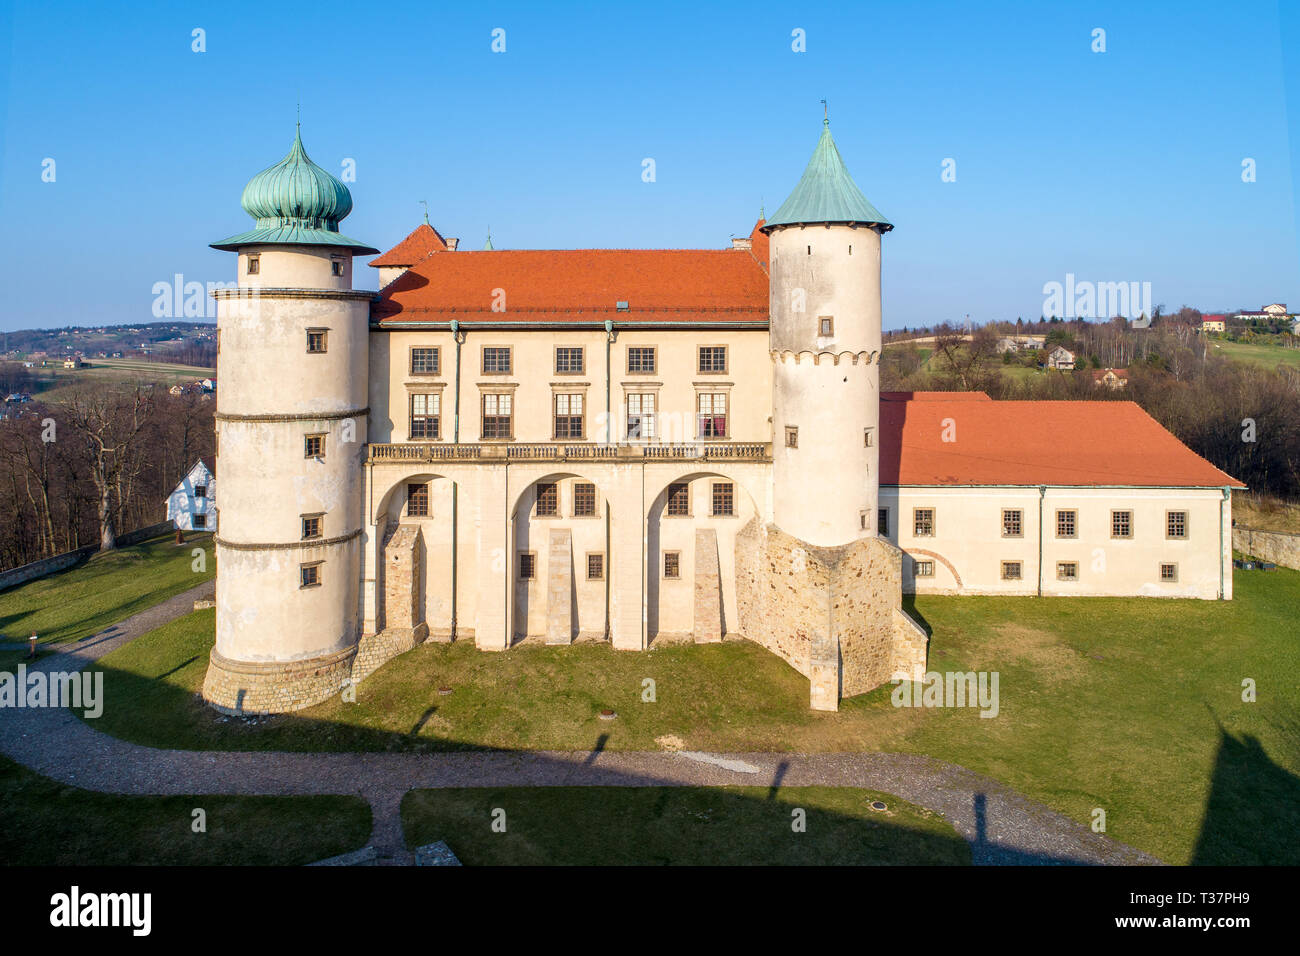 Poland. Renaissance, partly Baroque Castle on the hill in Nowy WiÅ›nicz. Presently owned by Polish state. Aerial view in spring. Sunset light. - Stock Image